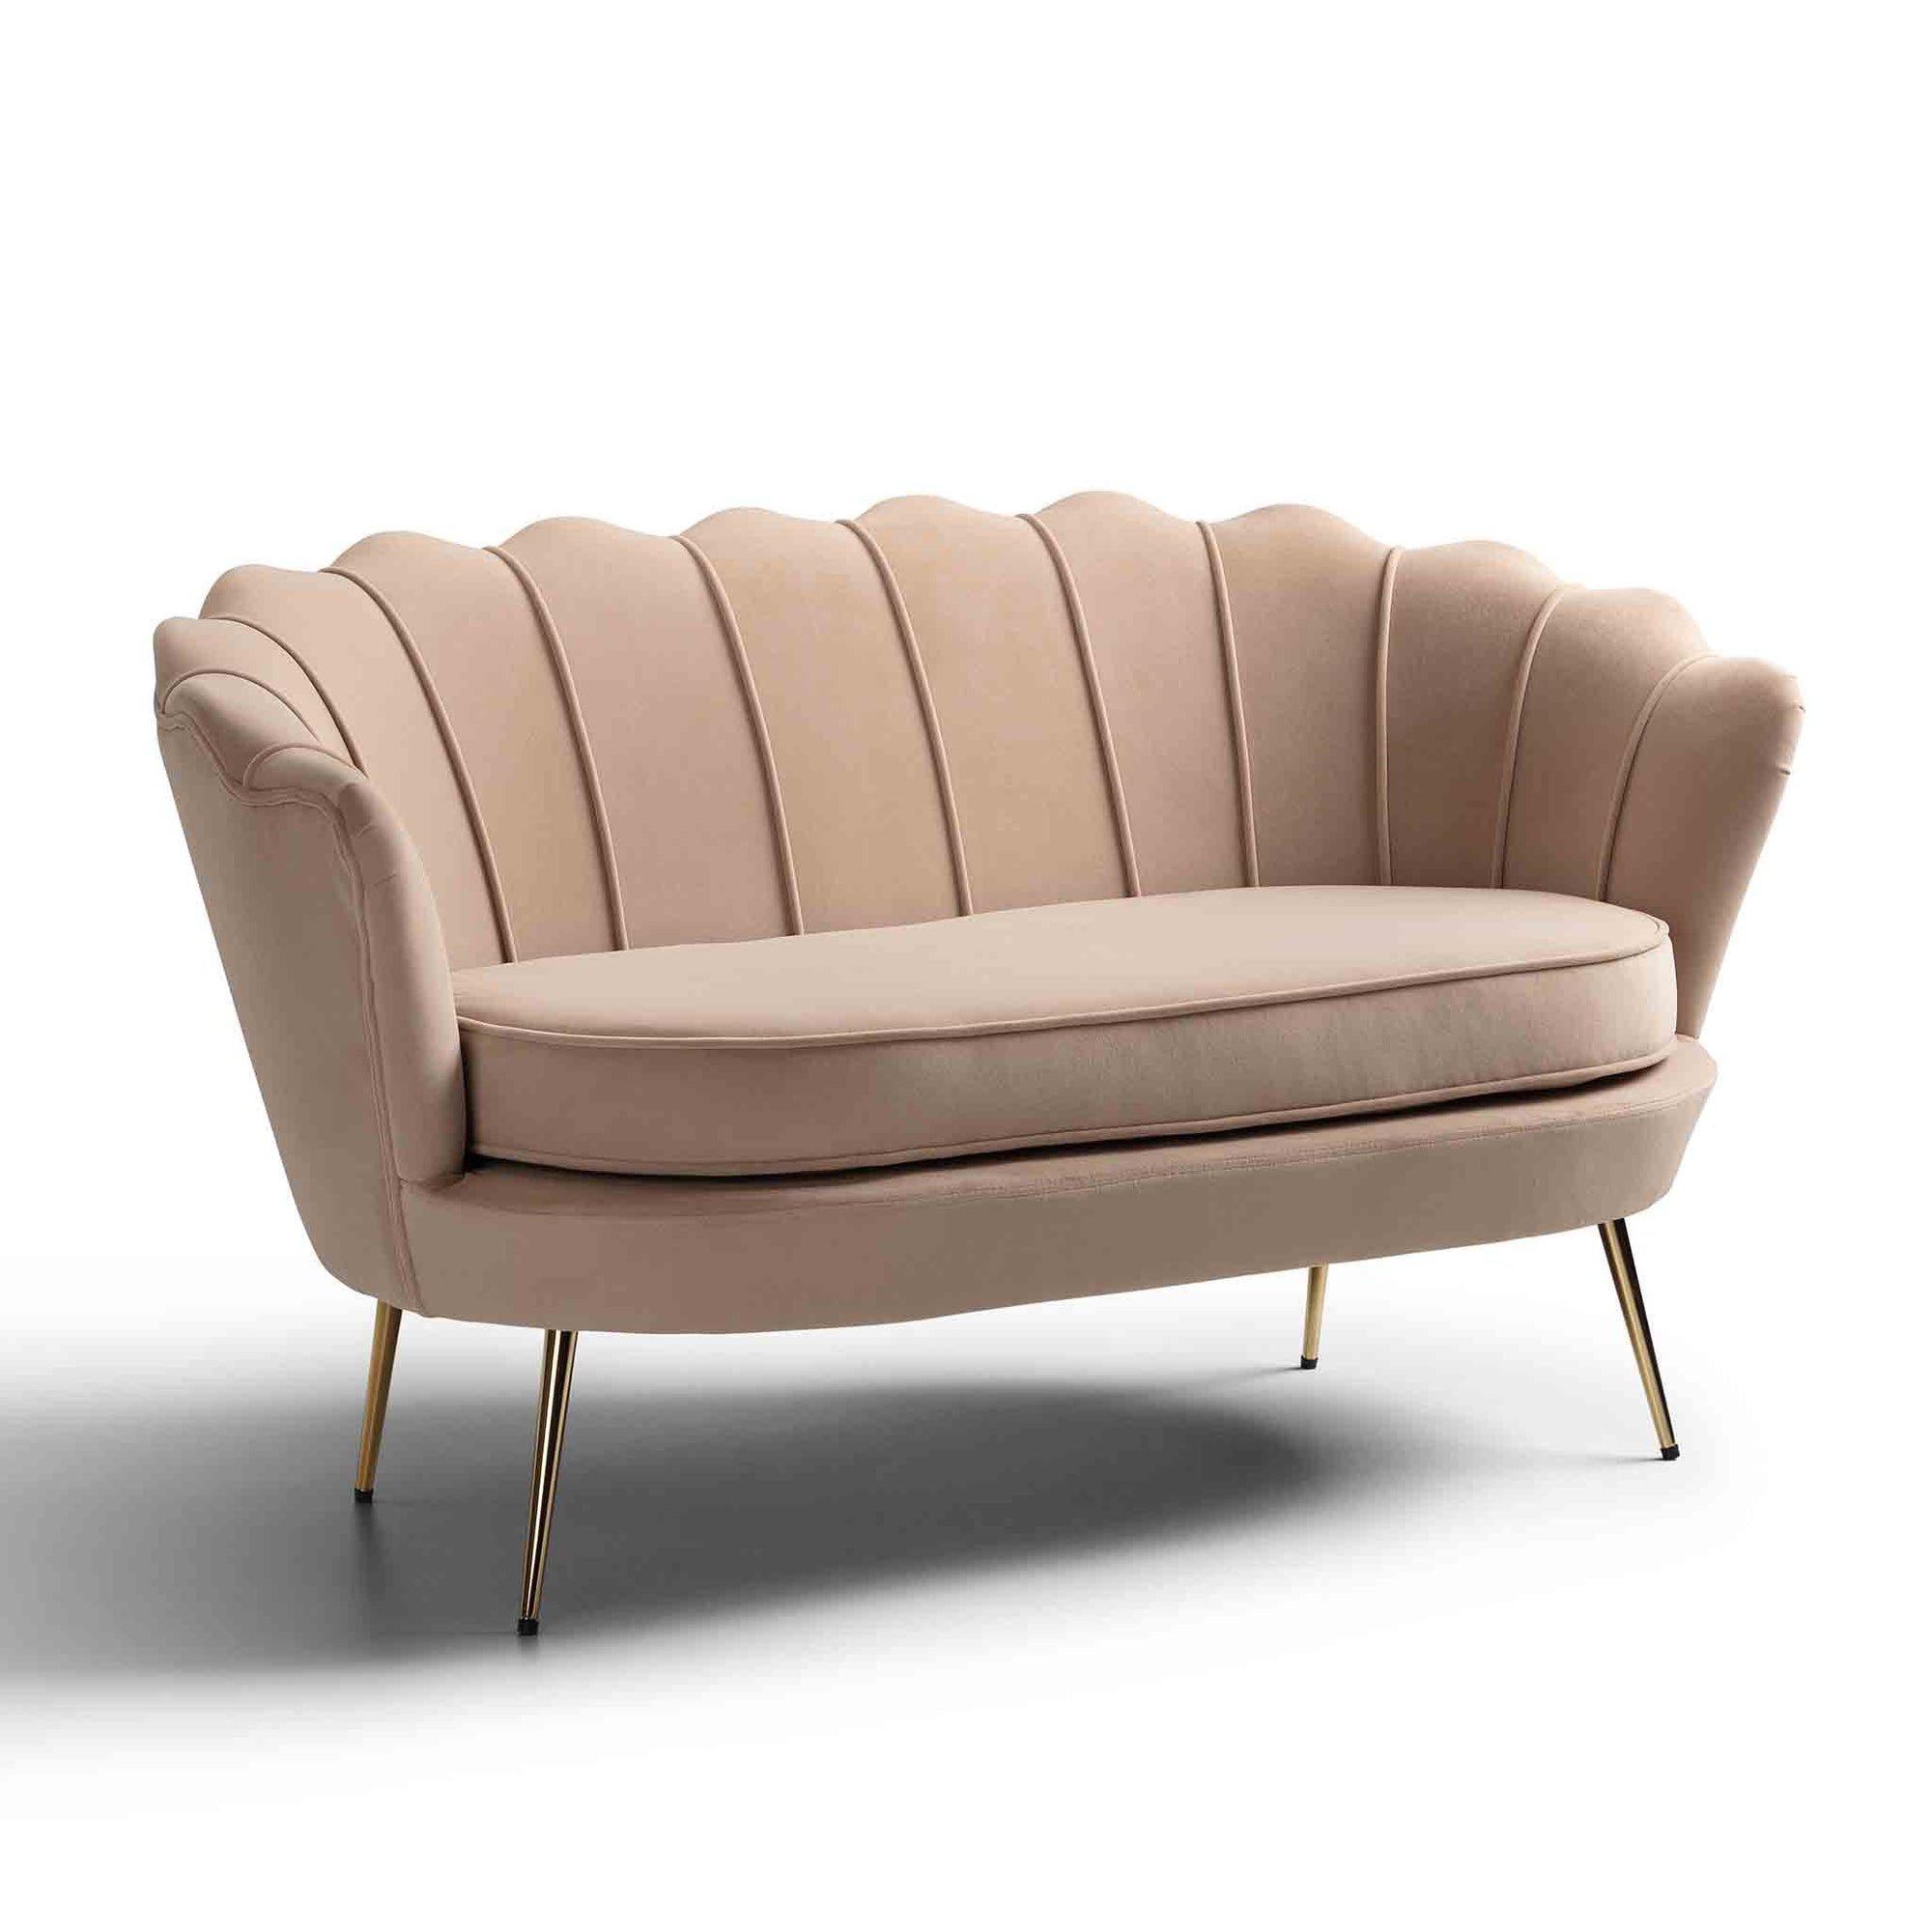 Pearl Shell Two Seater Chair by Roseland Furniture